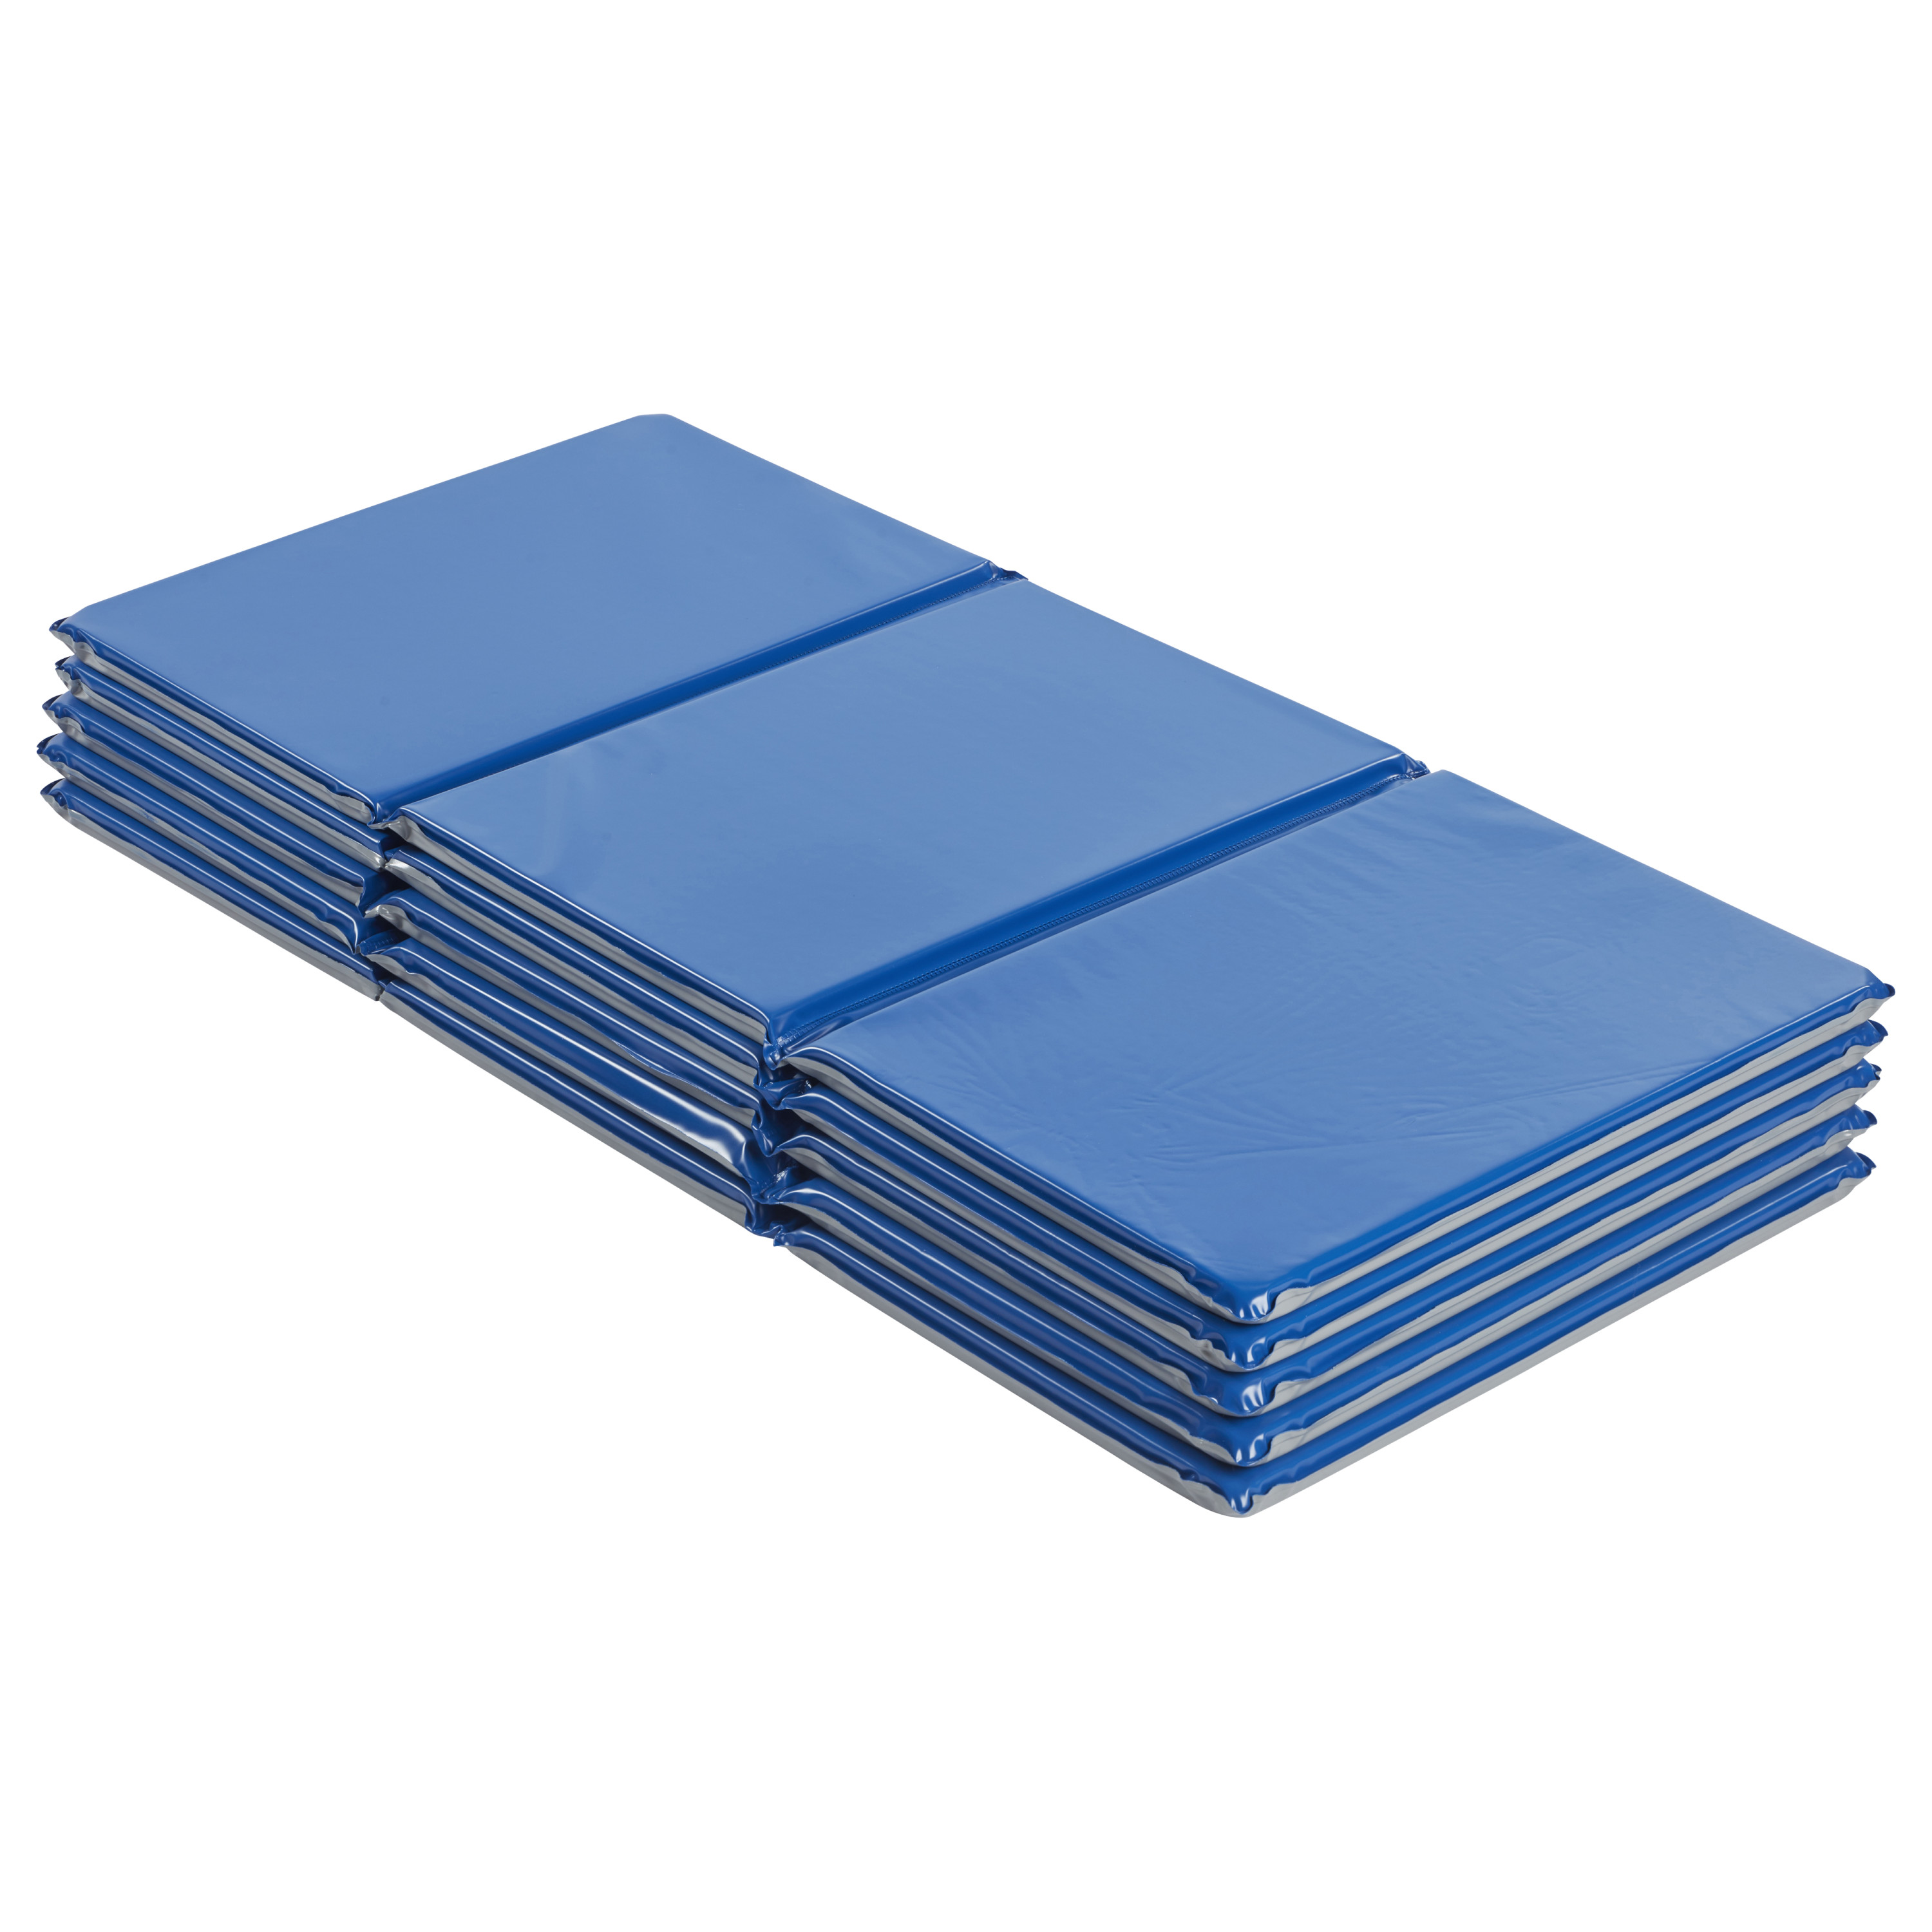 Everyday Folding Rest Mat 3-Section 1in